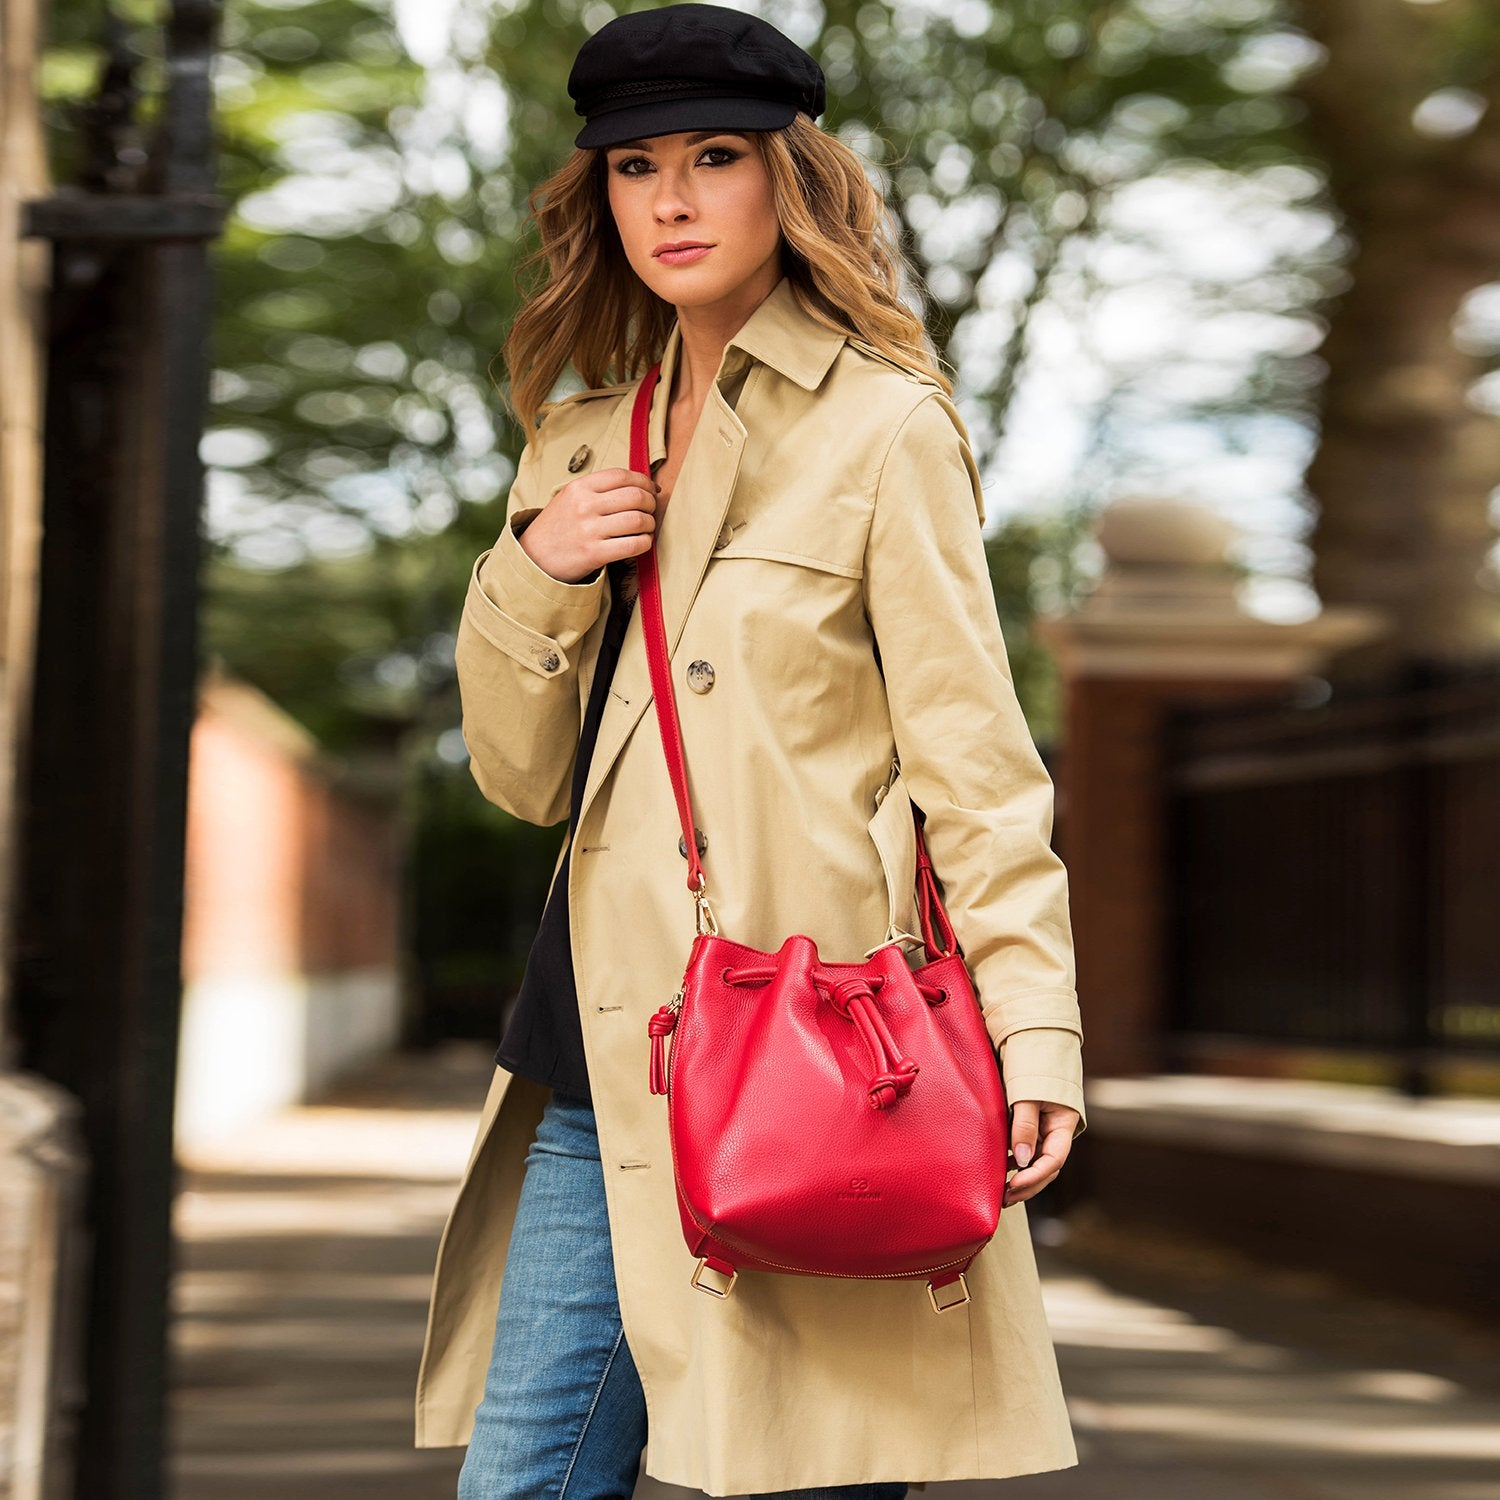 Model wearing a convertible medium leather bucket crossbody bag in red.